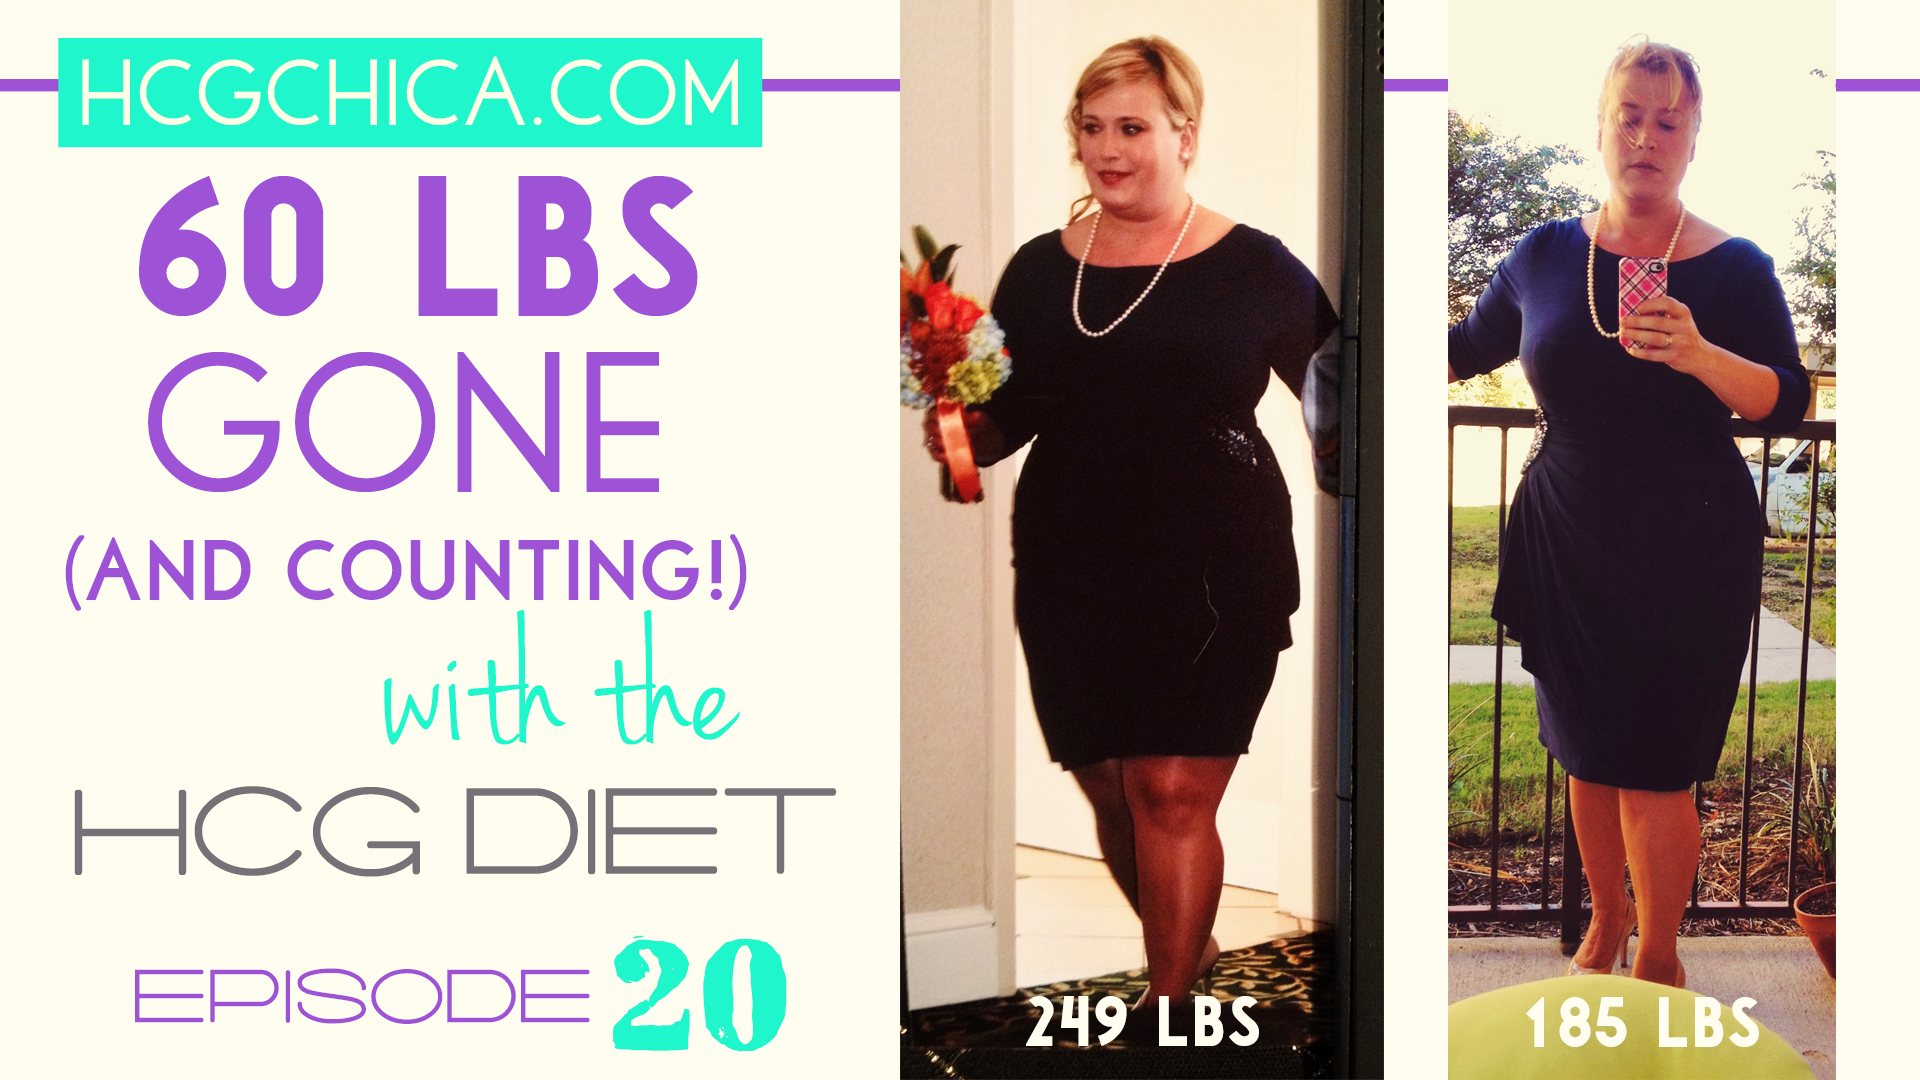 HCG Diet Interviews - Episode 20 - 60 lbs Lost in 12 weeks - hcgchica.com